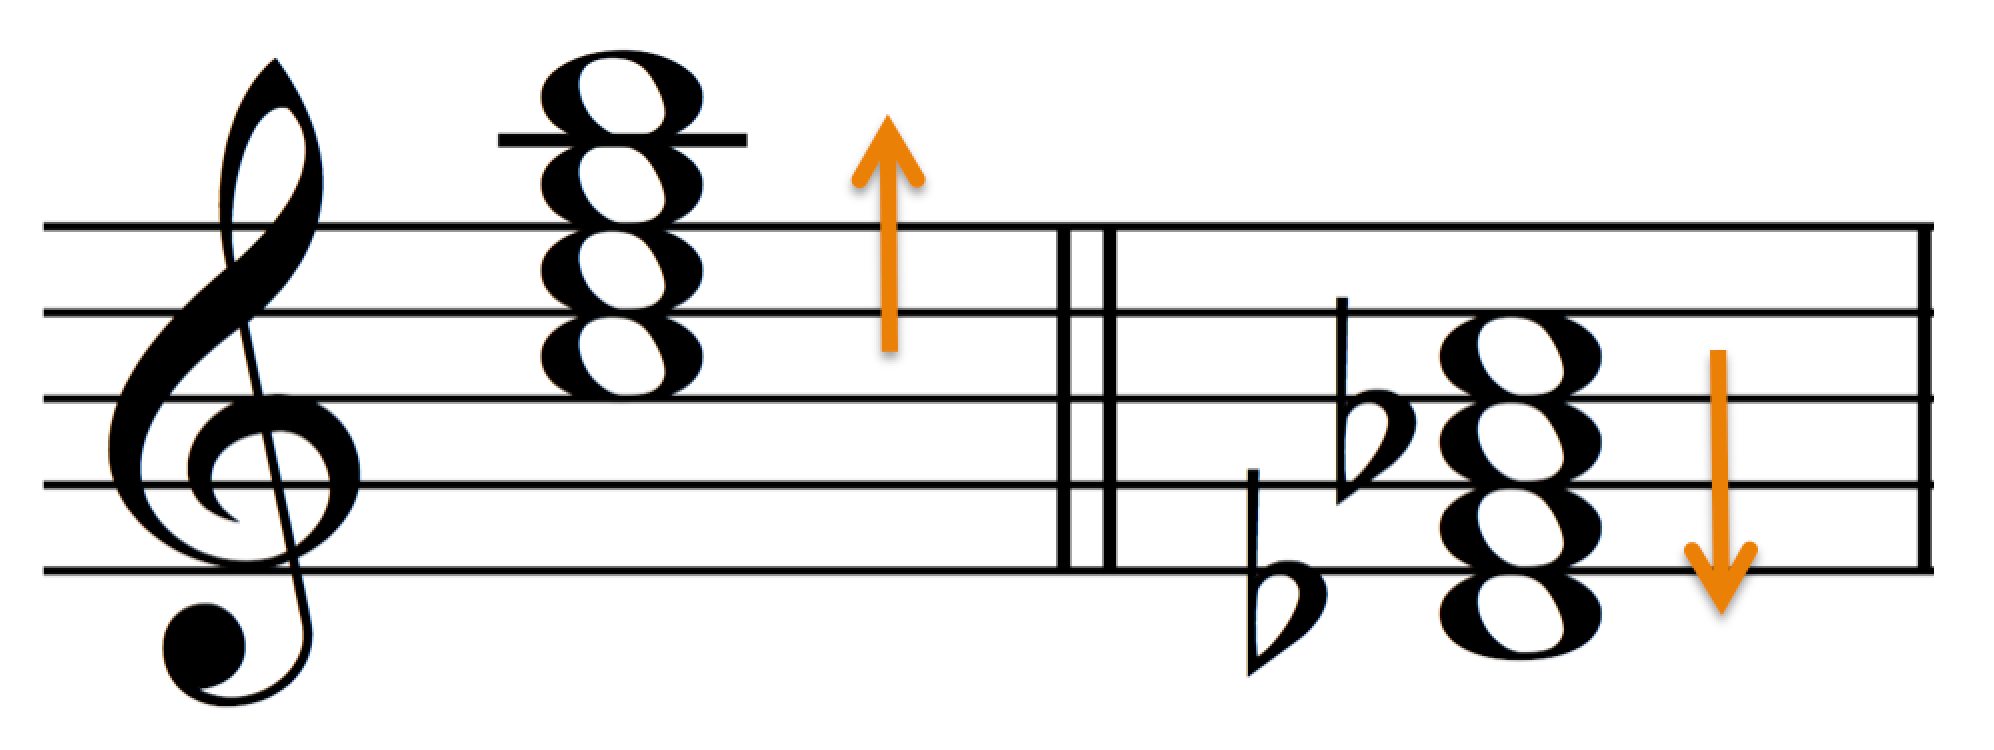 Chords in 3rds, negative harmony